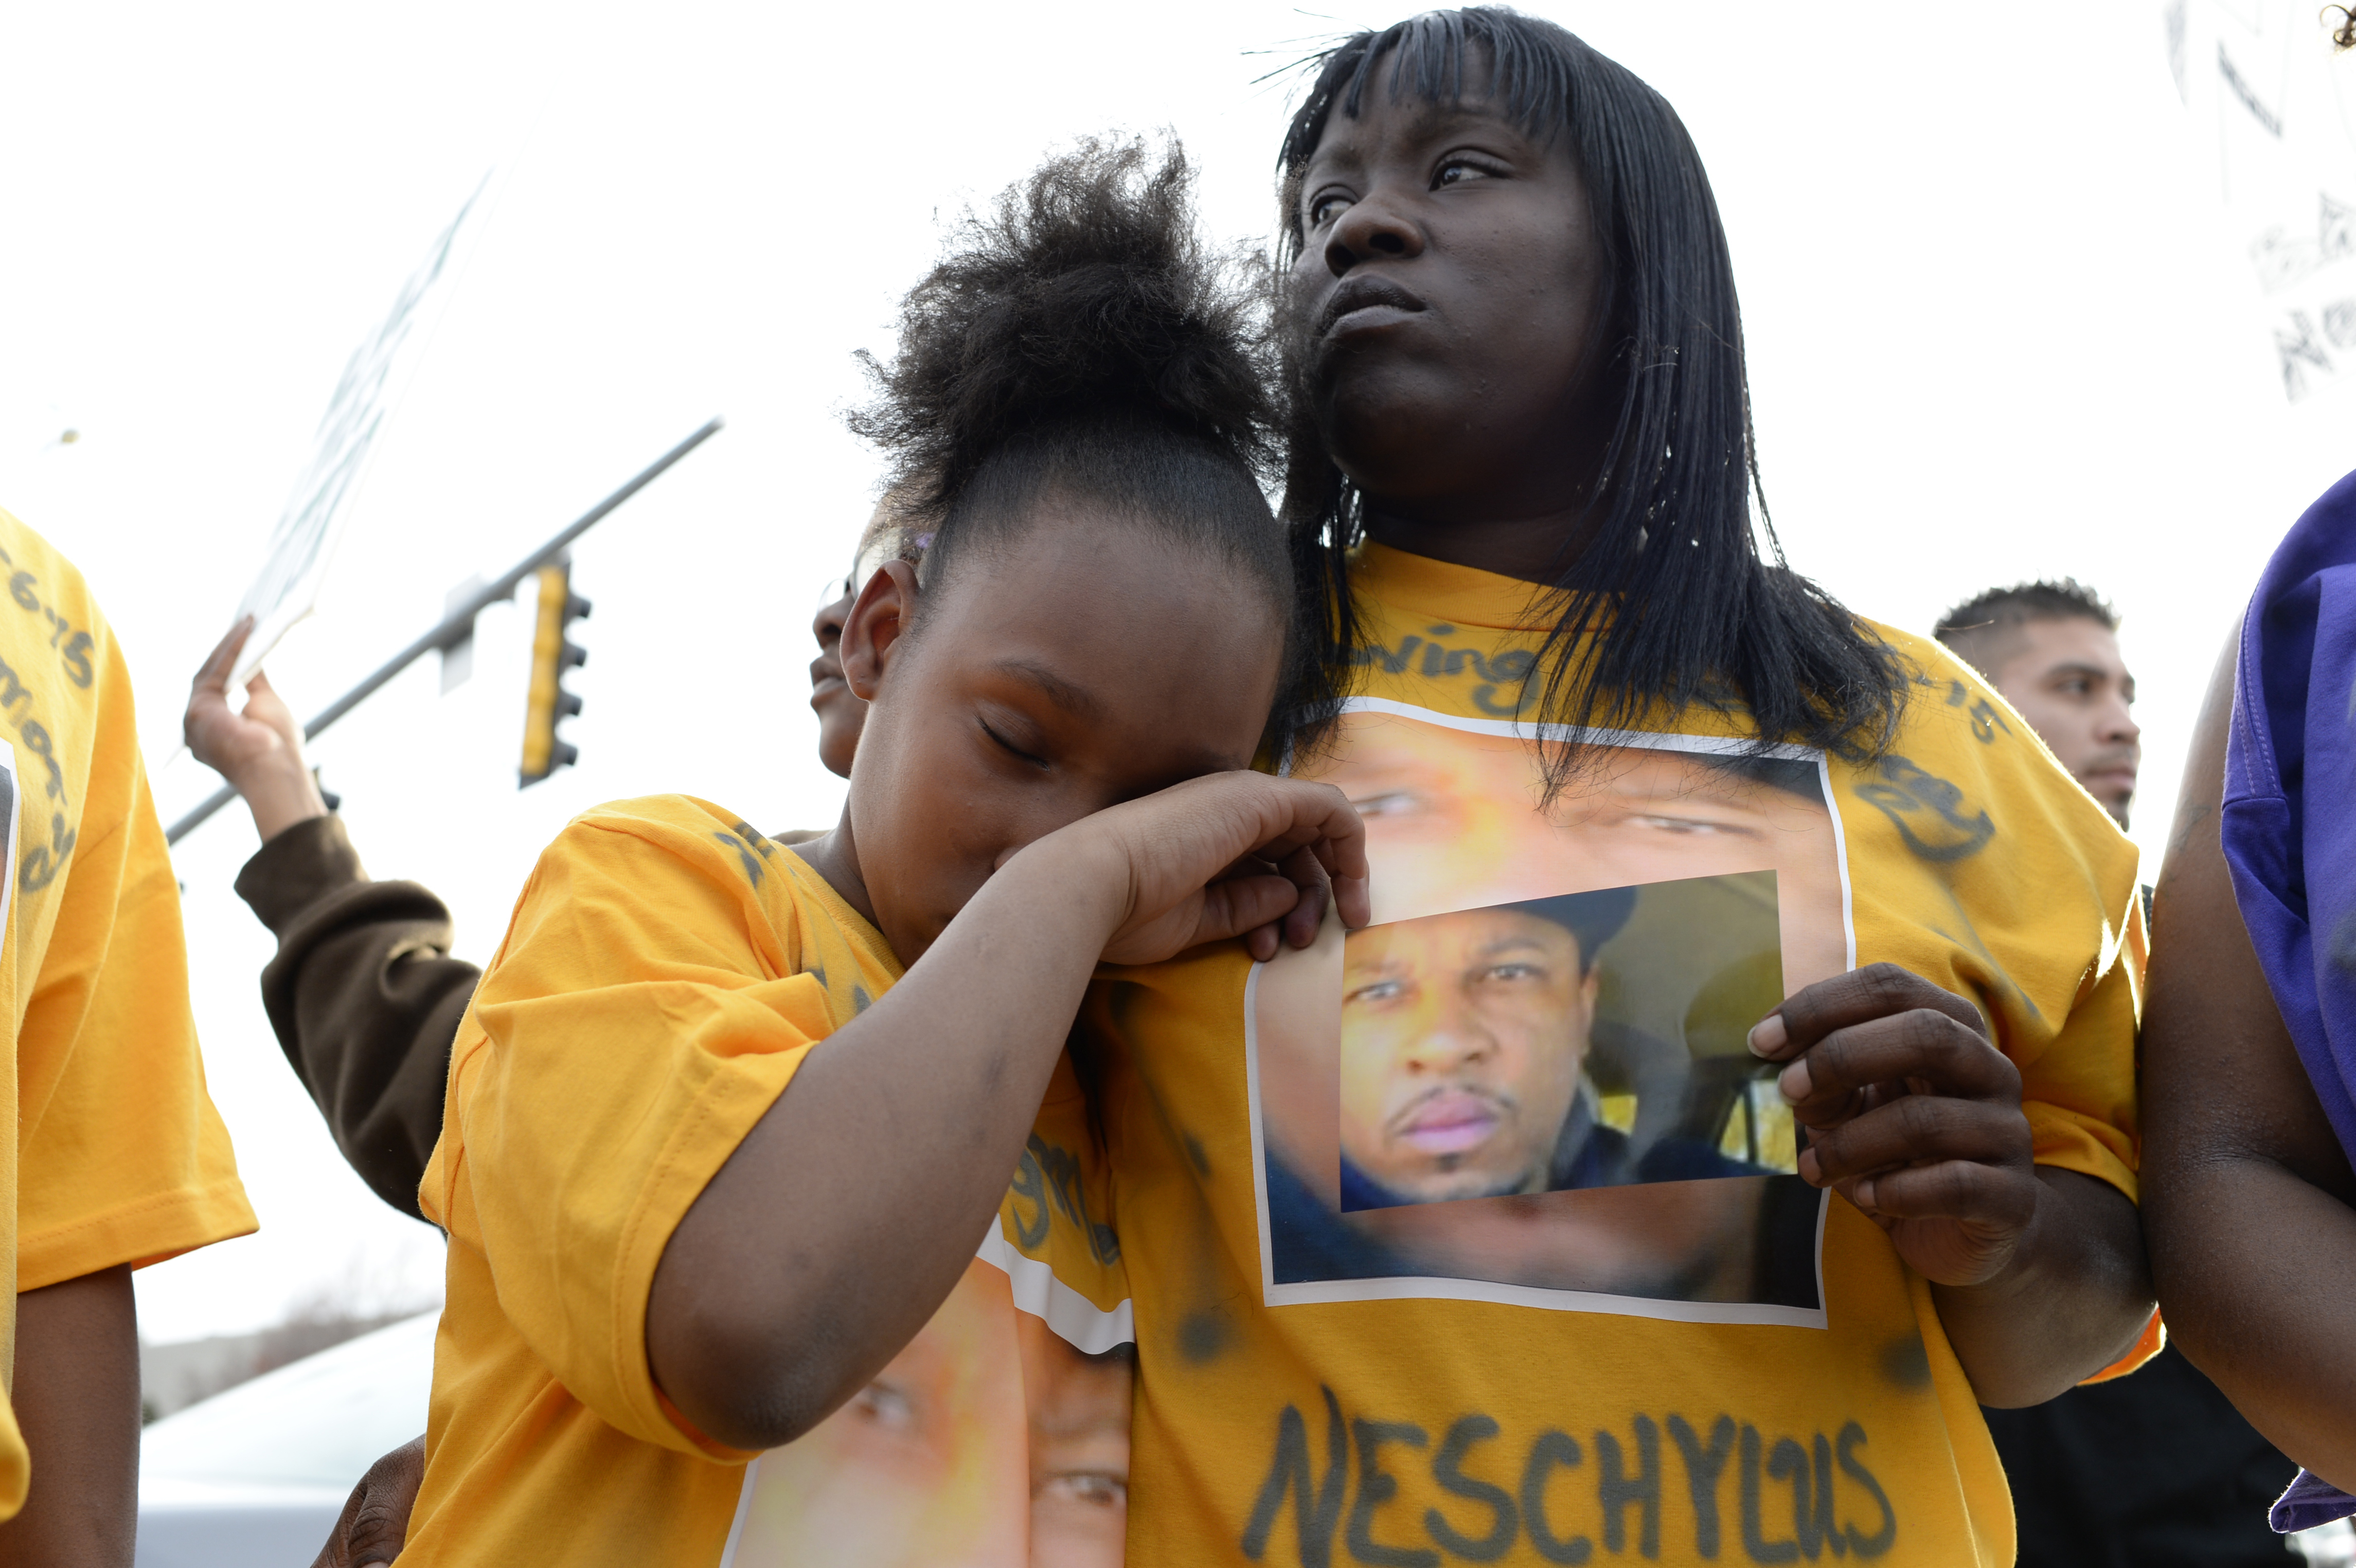 Xiaxong Carter, 10, daughter of Naeschylus Vinzant, wipes away a tear while she holds onto her mother, Laneisha Butler during a protest against the fatal police shooting of her father, in Aurora, Colo. on March 11, 2015.